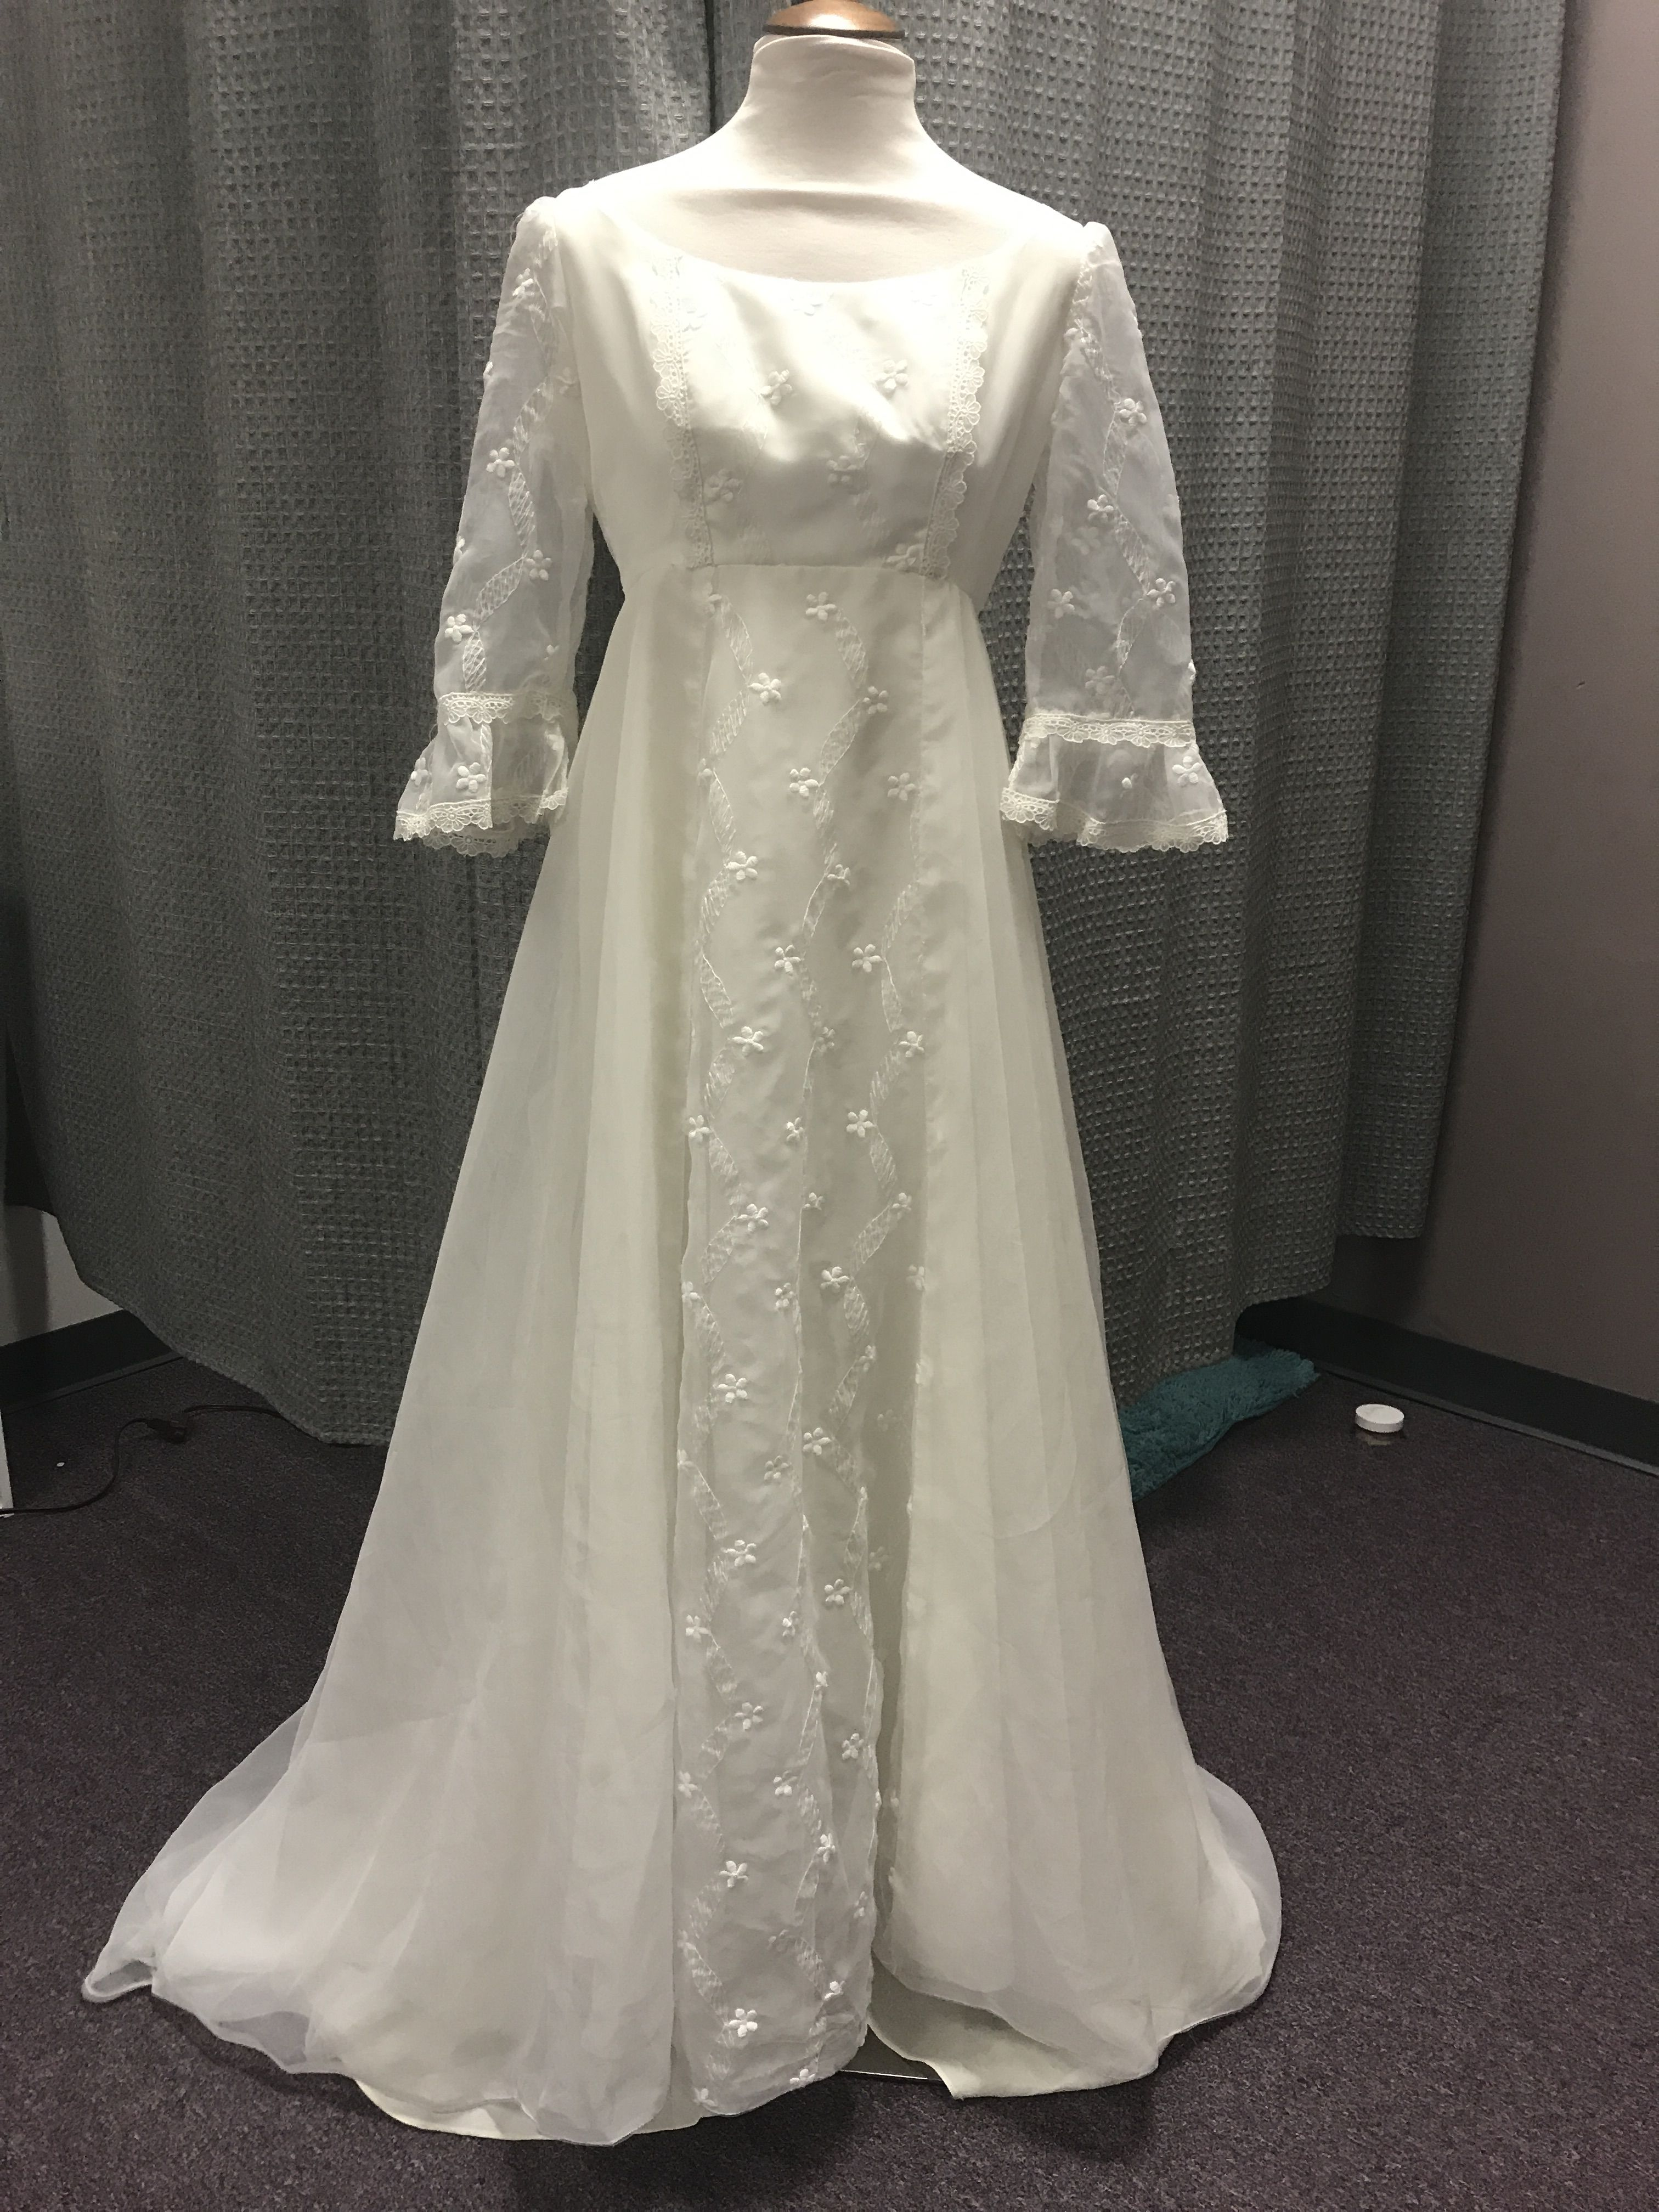 Restored And Restyled Boho Style Wedding Gown Boho Style Wedding Vintage Boho Wedding Wedding Gowns